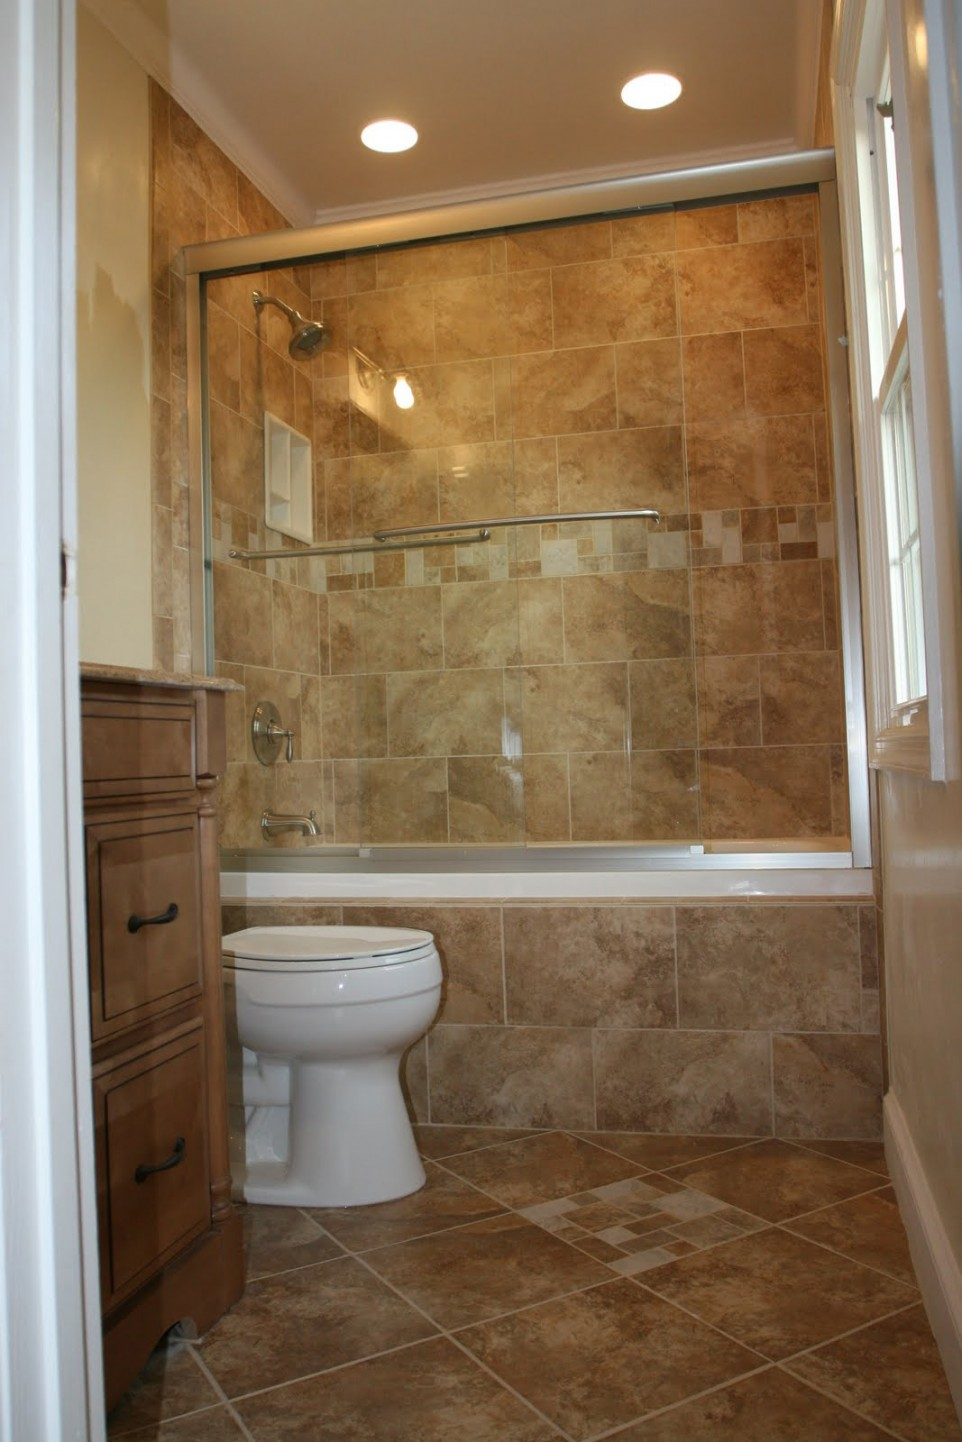 layout-bathroom-remodel-ideas